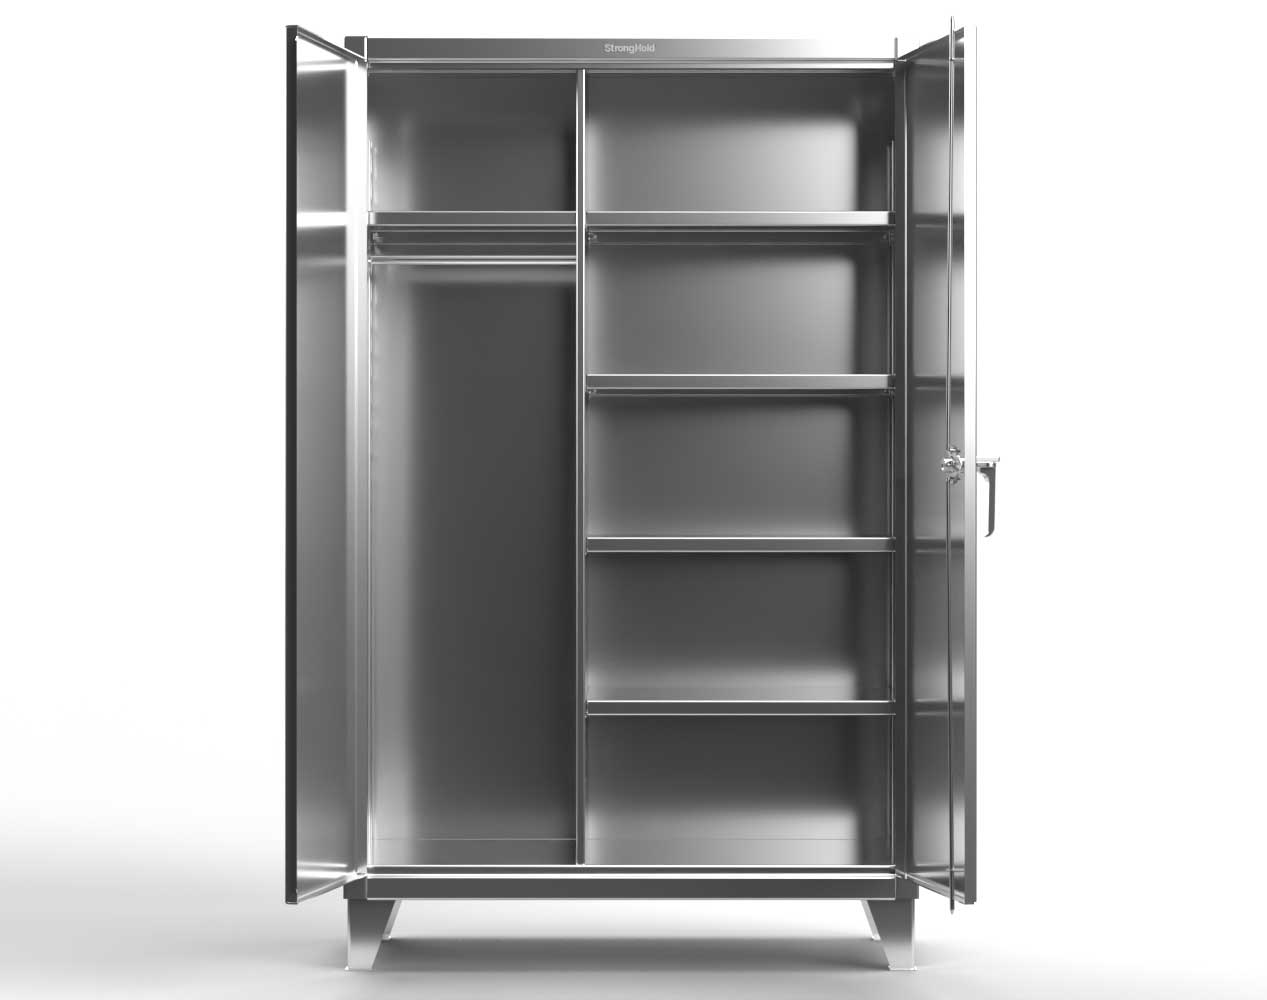 Extra Heavy Duty 12 GA Stainless Steel Wardrobe Cabinet with 5 Shelves – 48 In. W x 24 In. D x 66 In. H